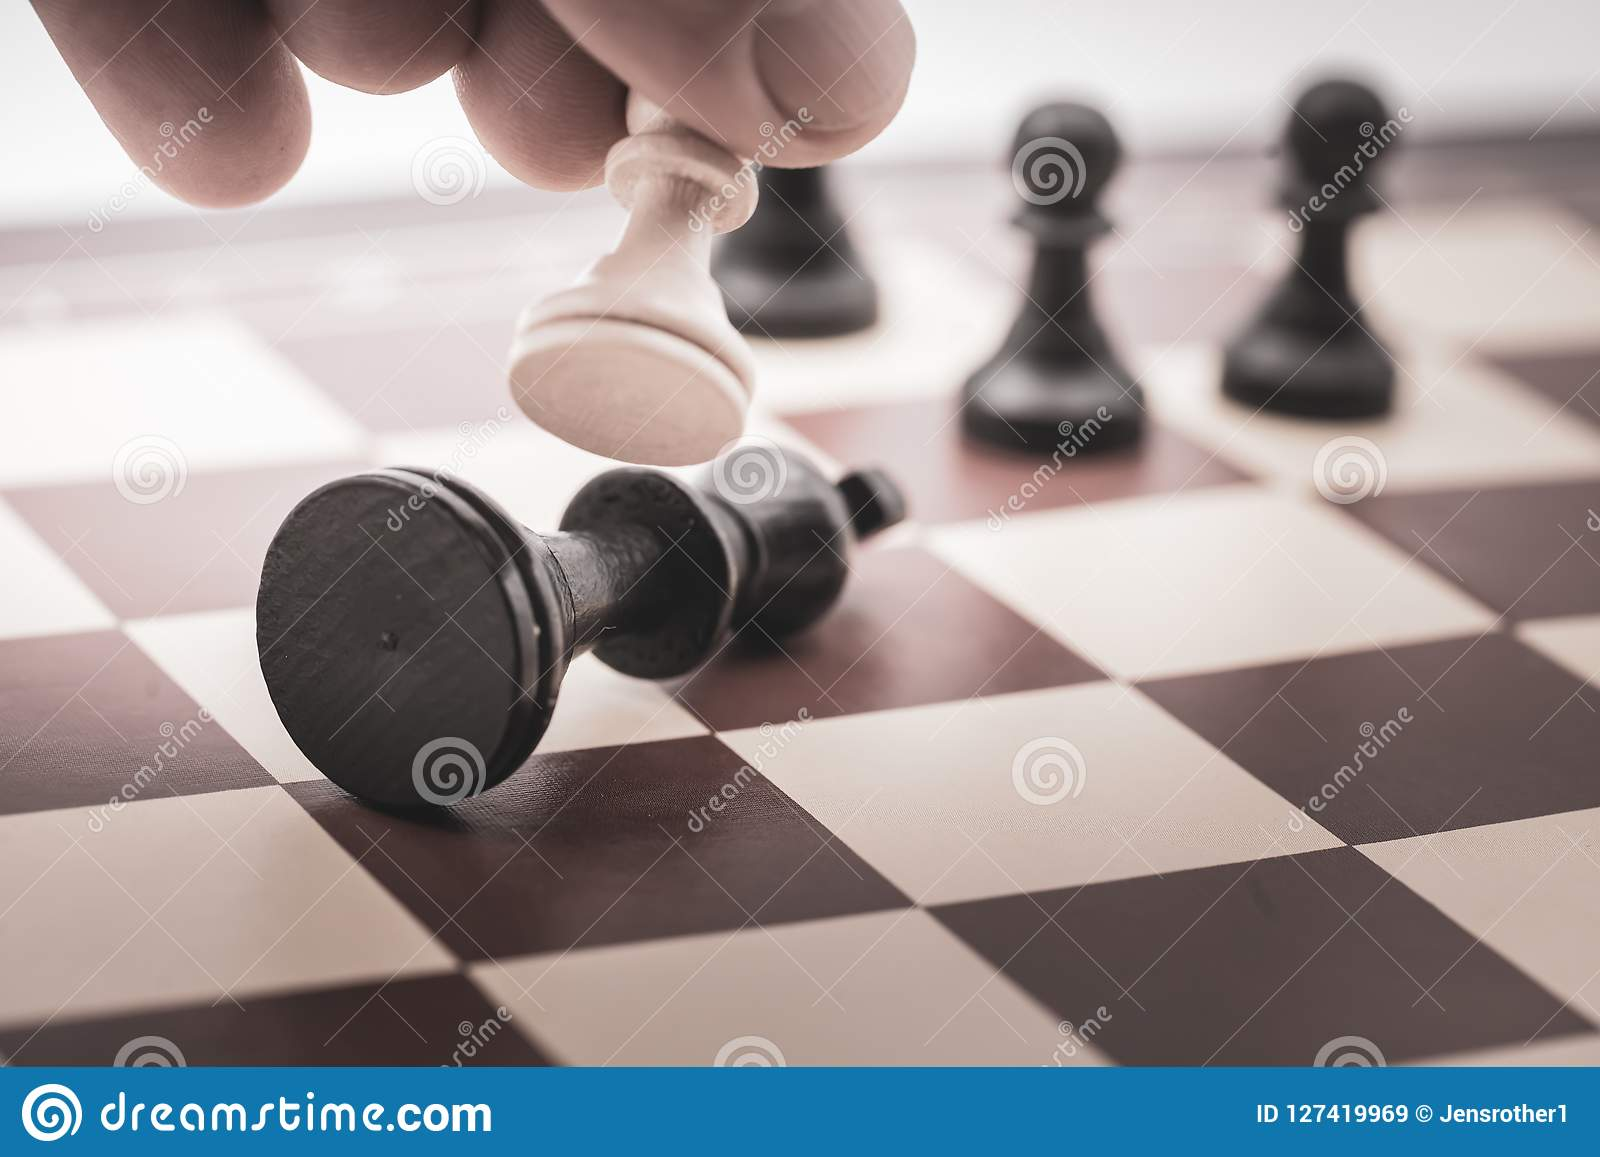 Pawn beats the king on a chess board